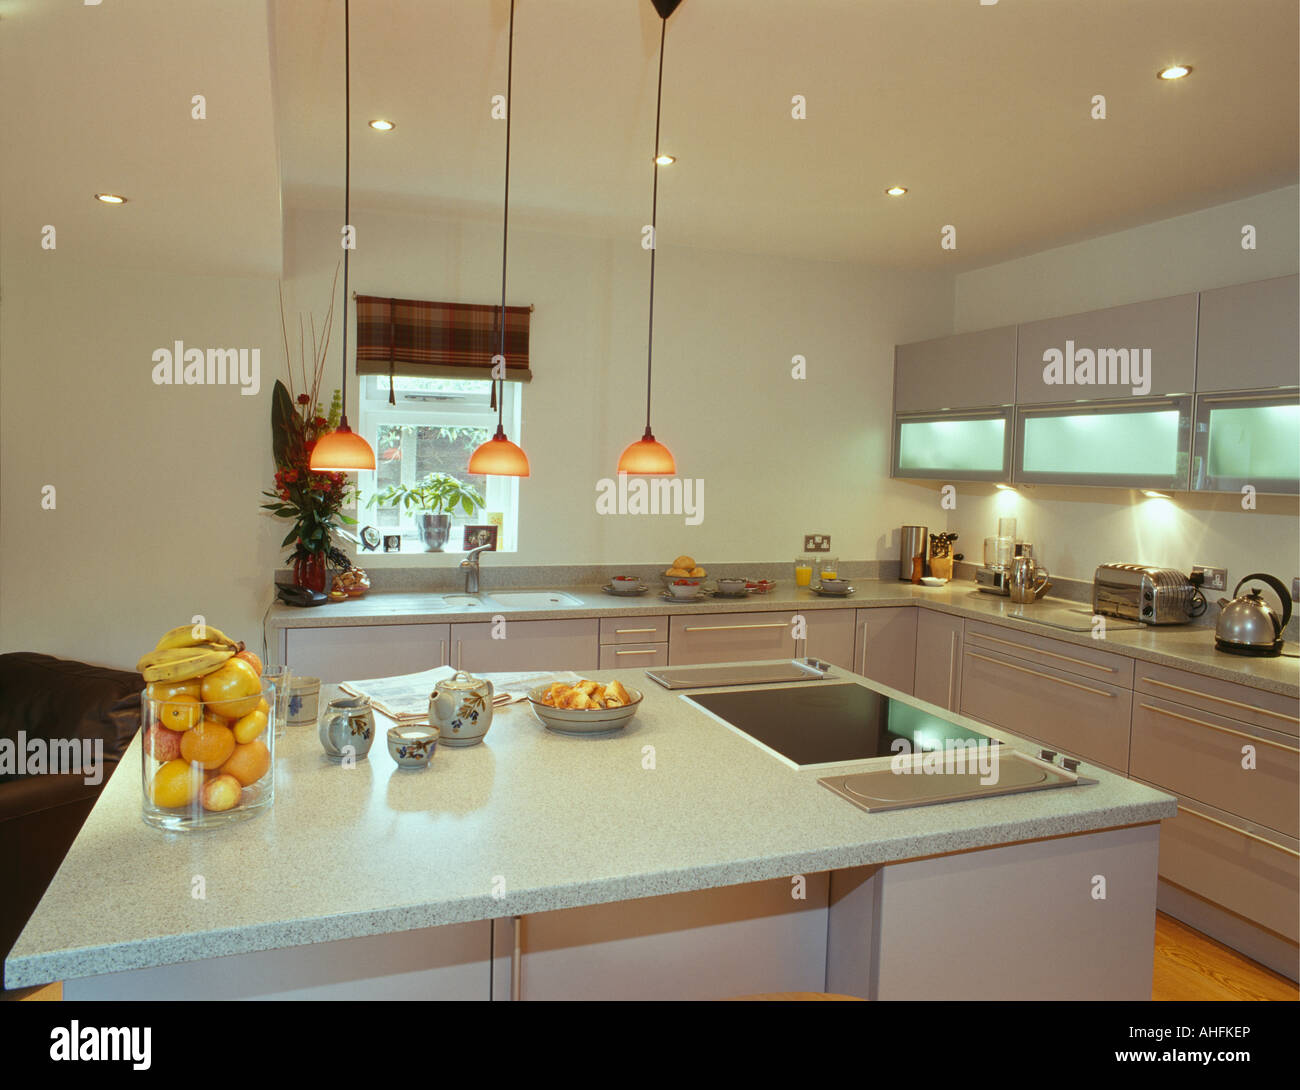 Pendant lights over island unit with halogen hob and oranges in glass jar  in modern white kitchen